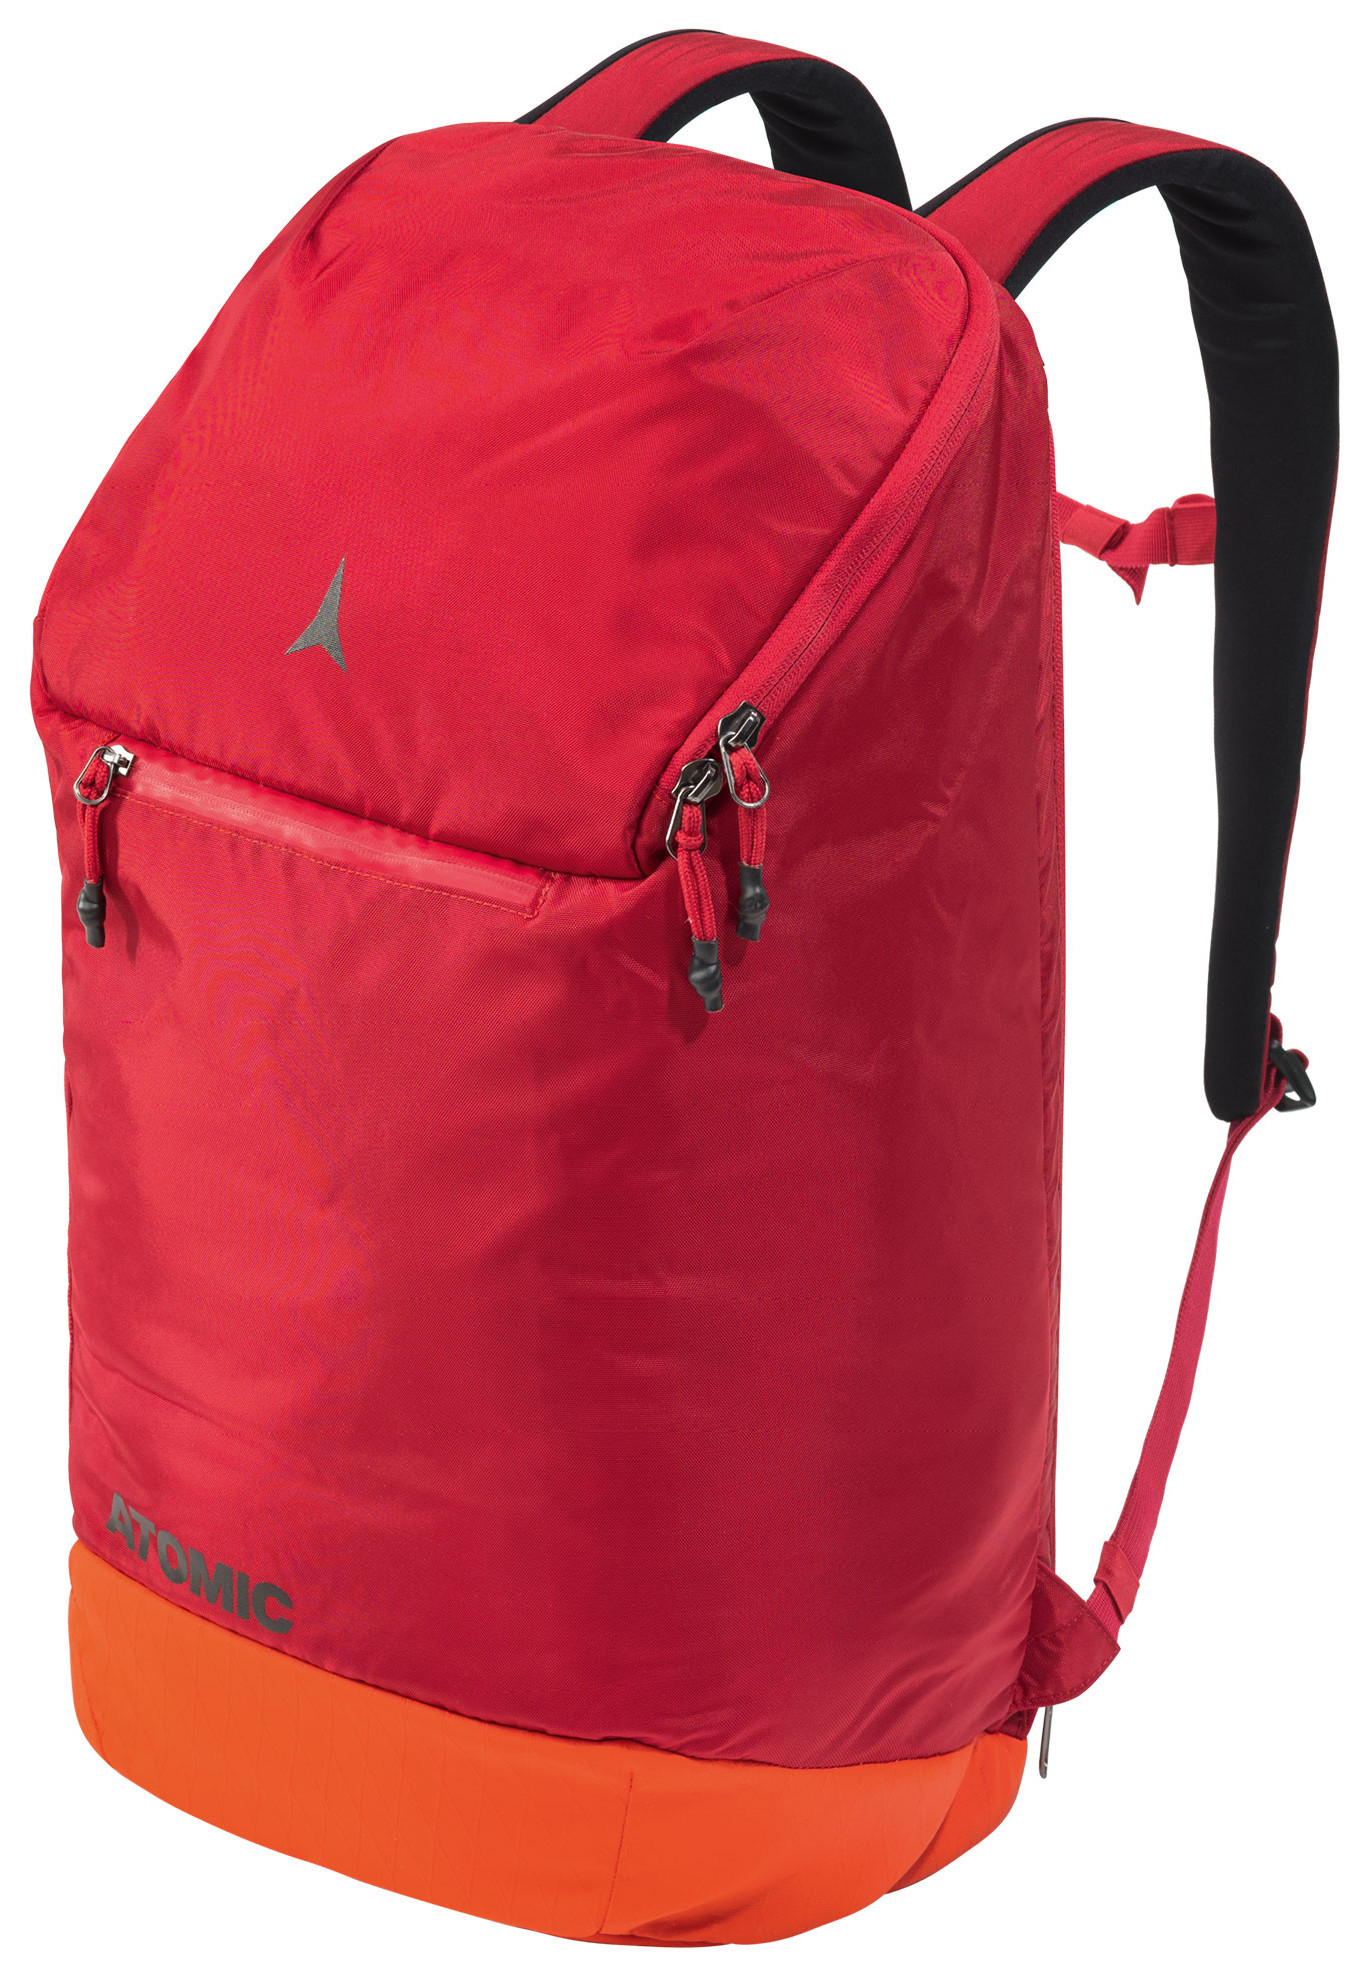 Рюкзак Atomic Bag Laptop Pack 22 л Red/Bright Red - Фото 1 большая